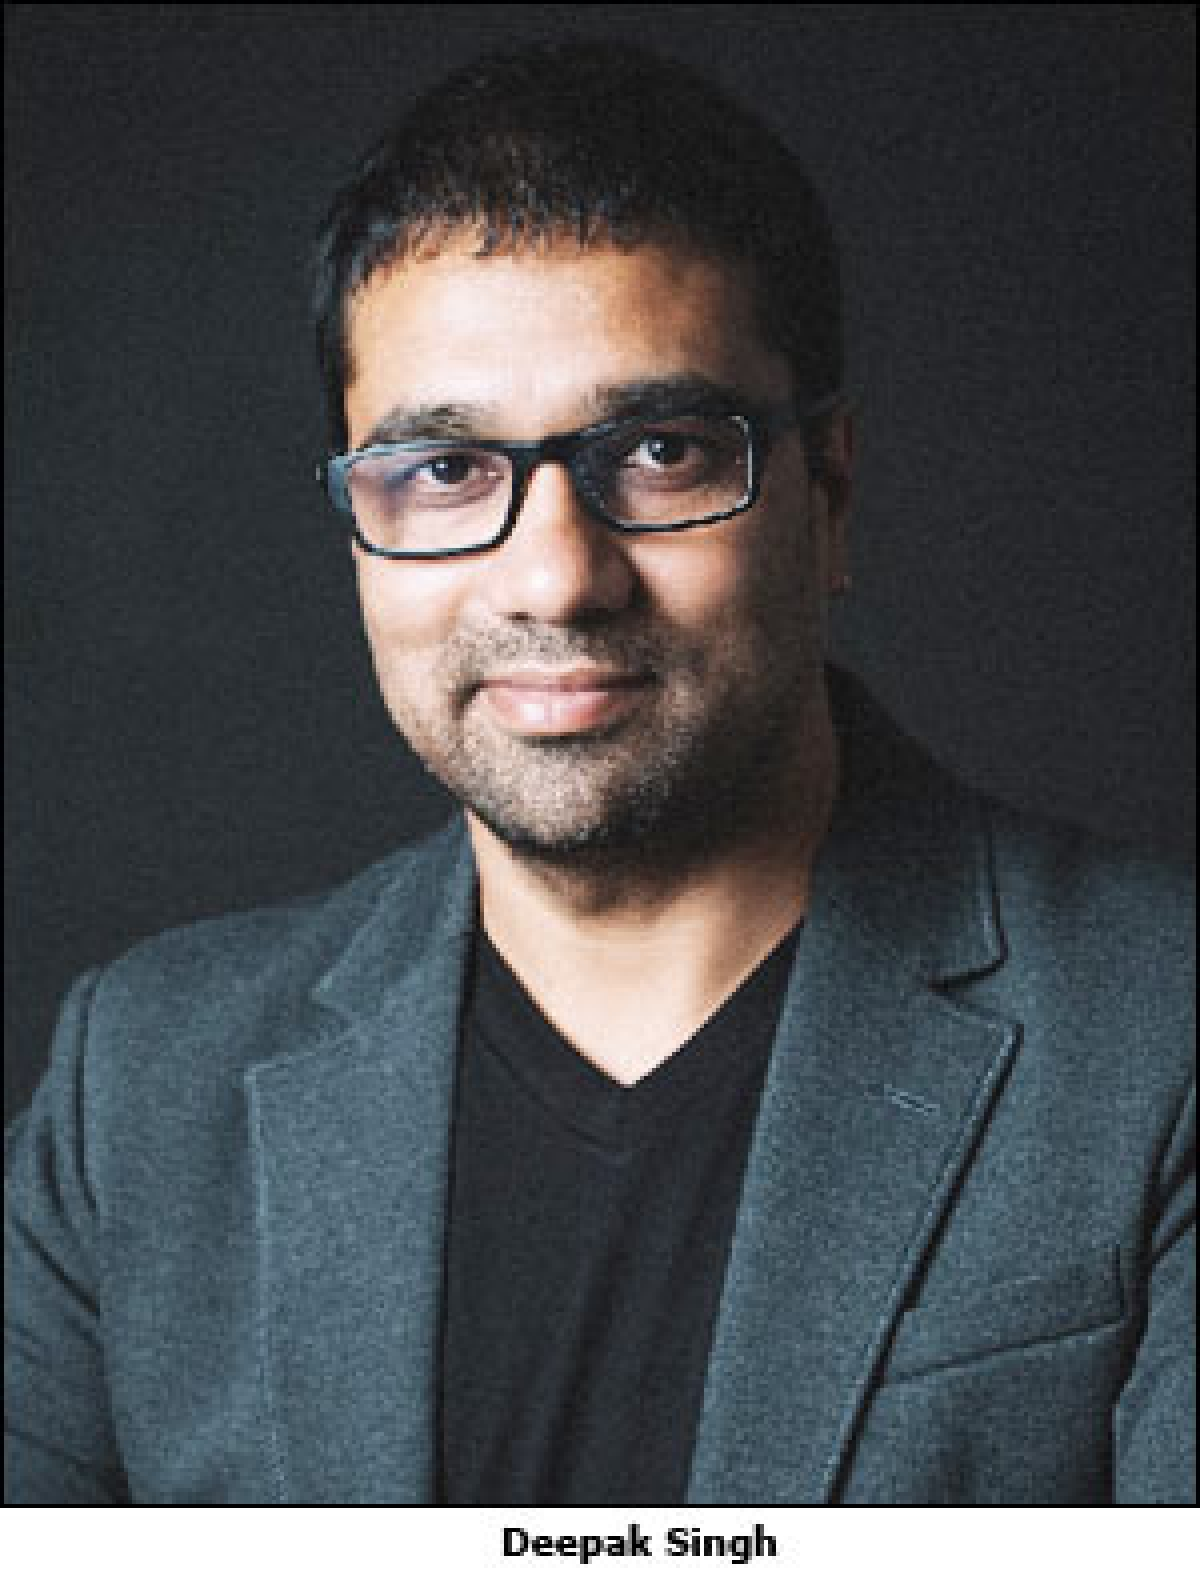 Deepak Singh appointed ECD at Dentsu Creative Impact